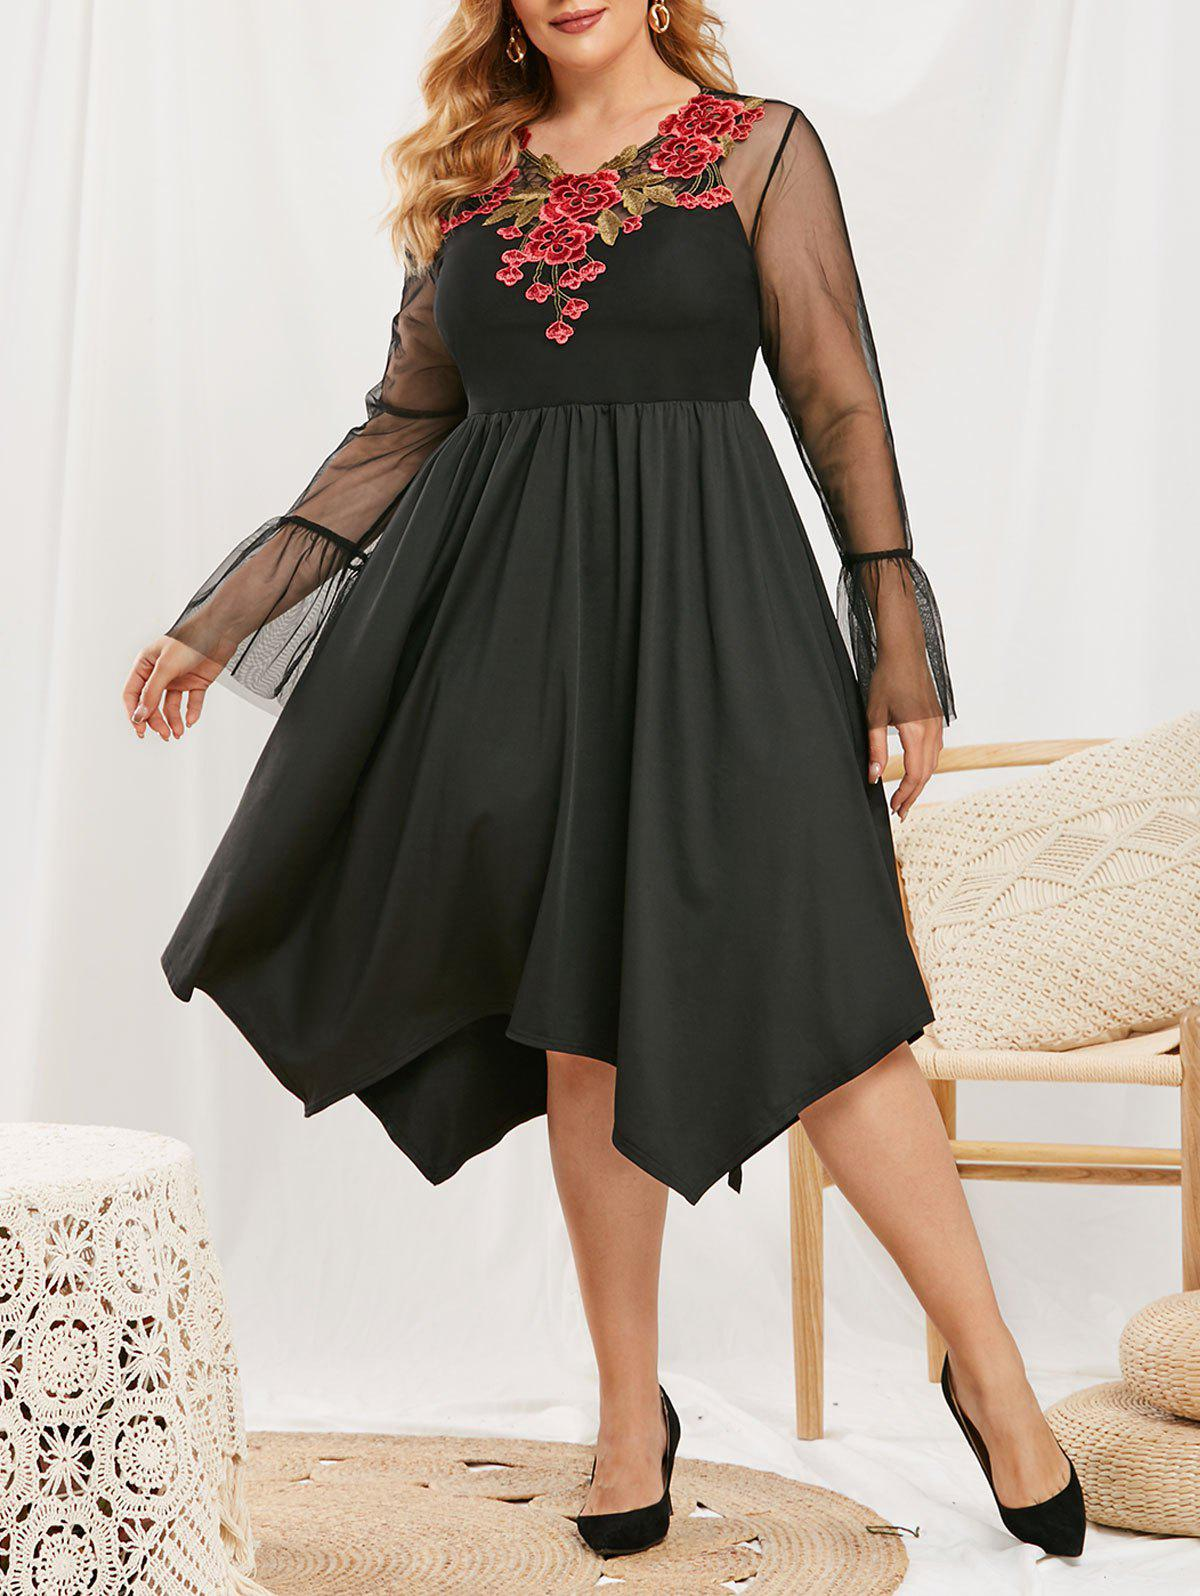 Plus Size Flower Applique Lace Bell Sleeve Dress with Camisole - BLACK 5X